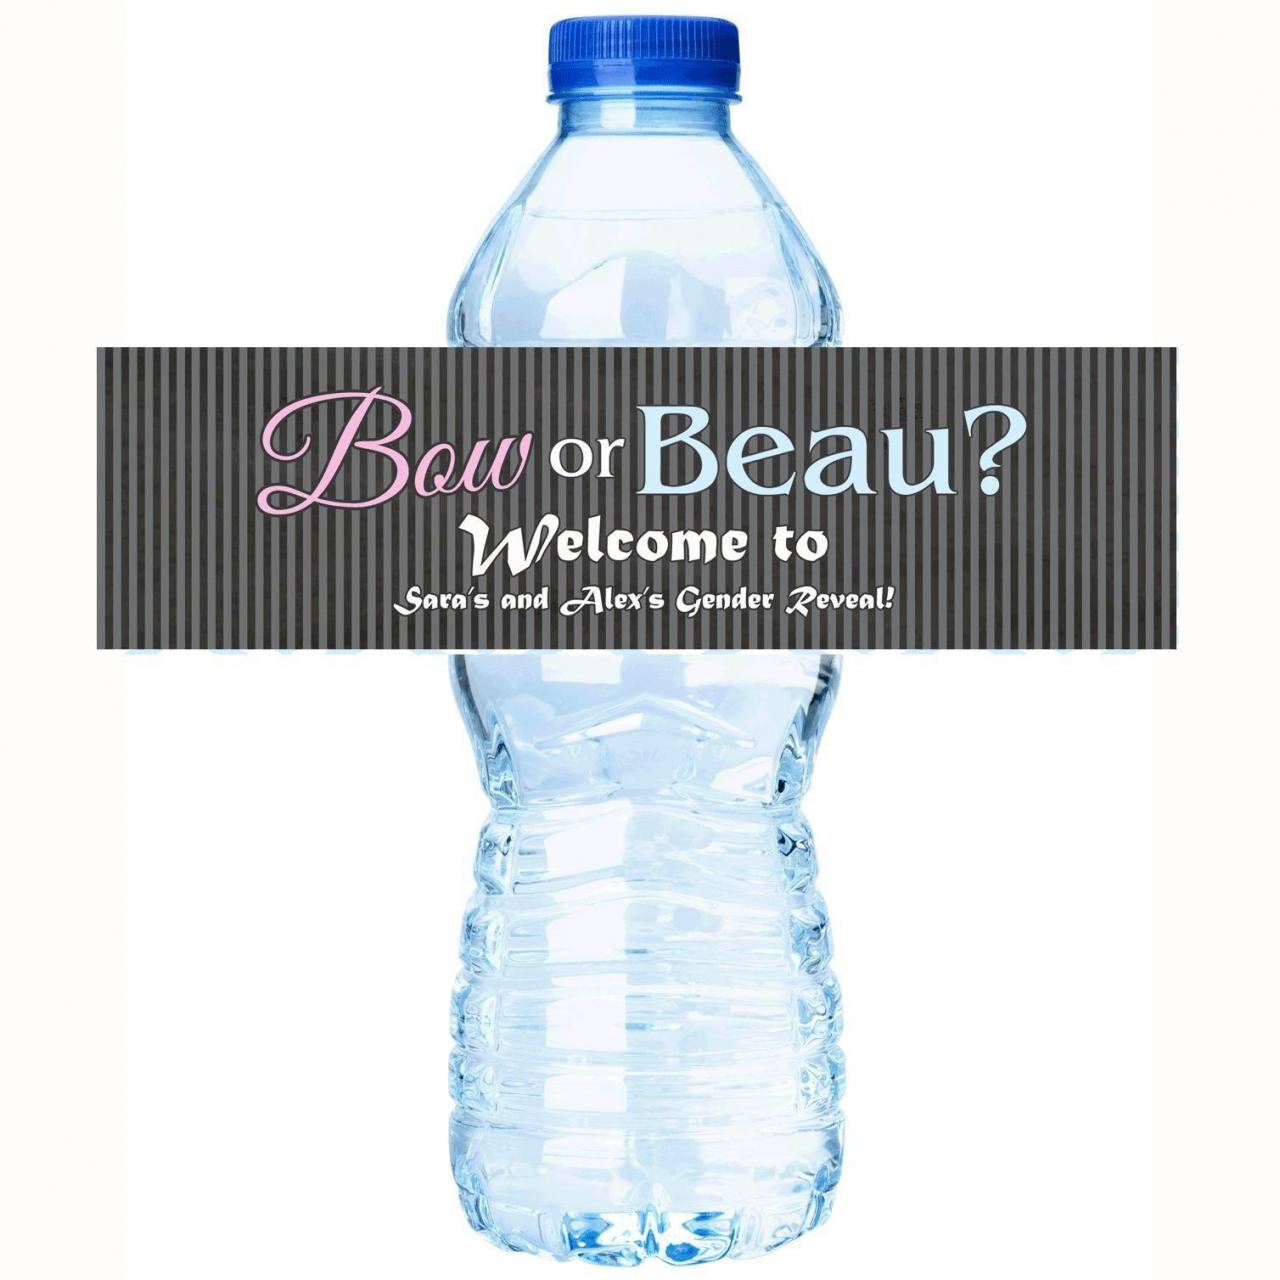 Personalized Baby Shower Water Bottle Labels - Gender Reveal Collection